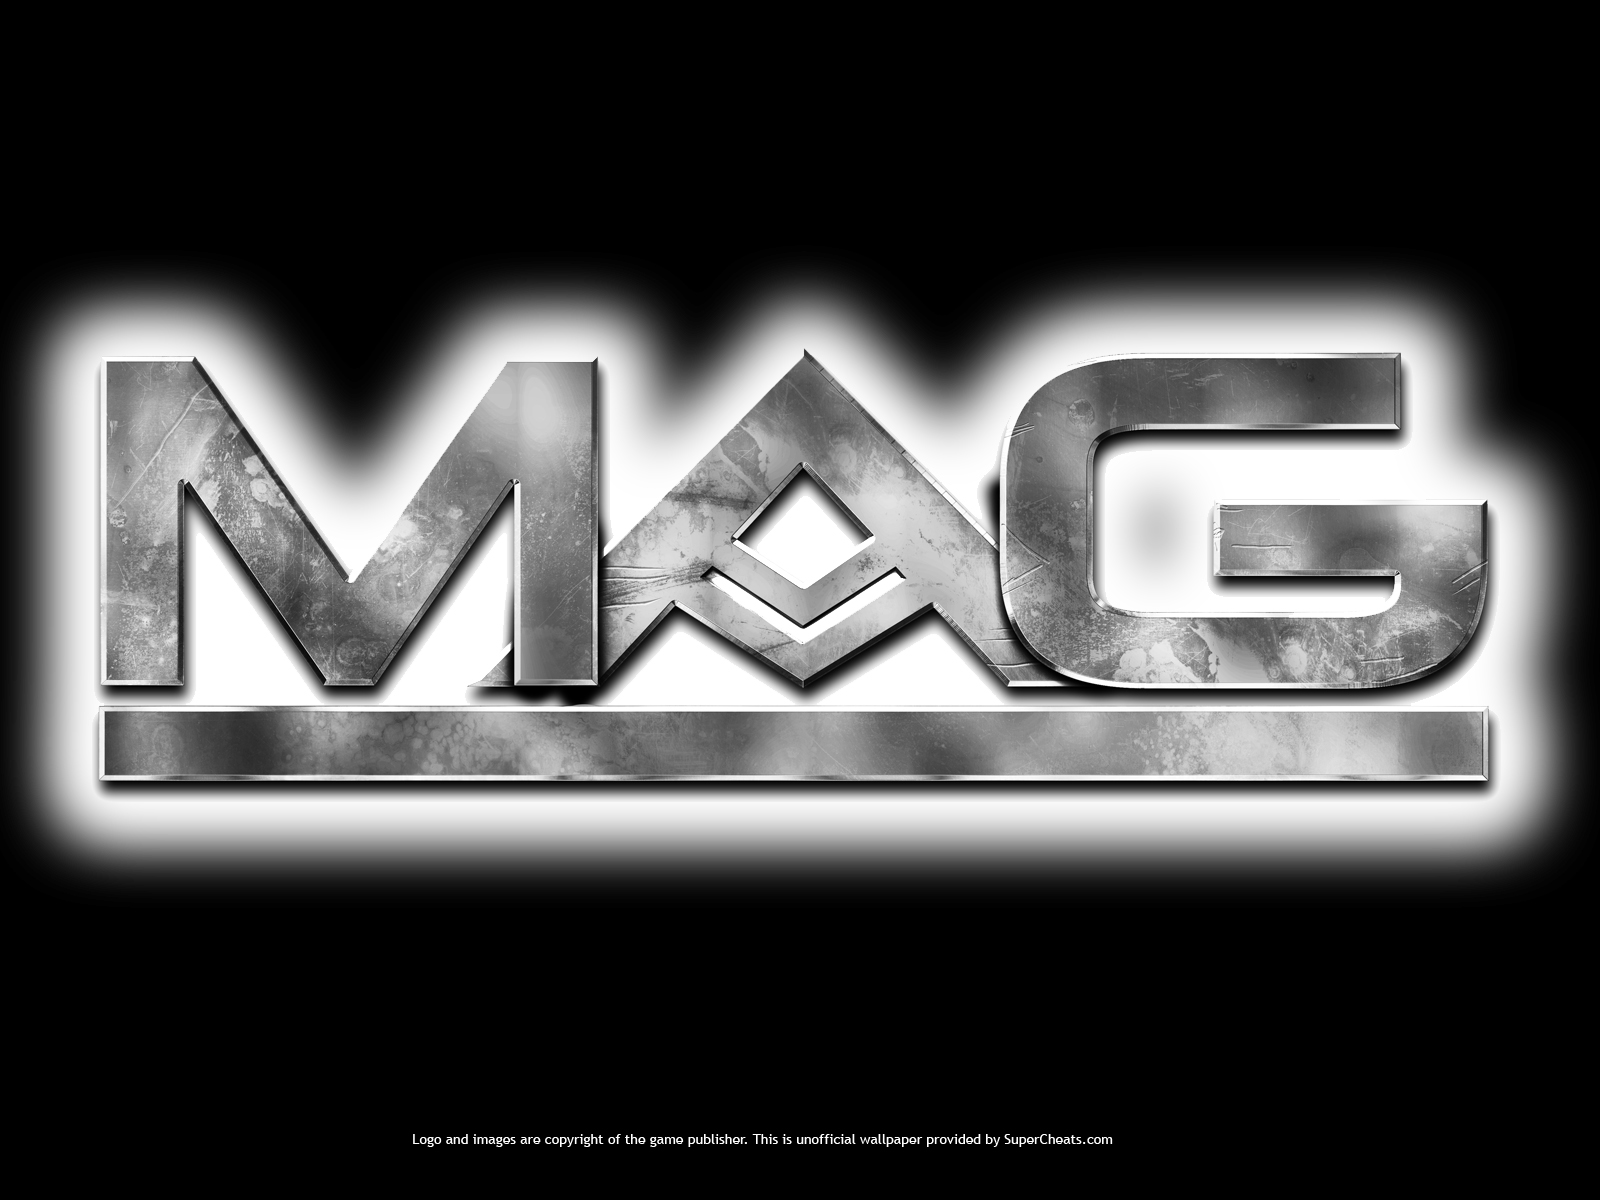 Wallpapers for MAG select size 1600x1200 1280x1024 1280x960 1024x768 1600x1200